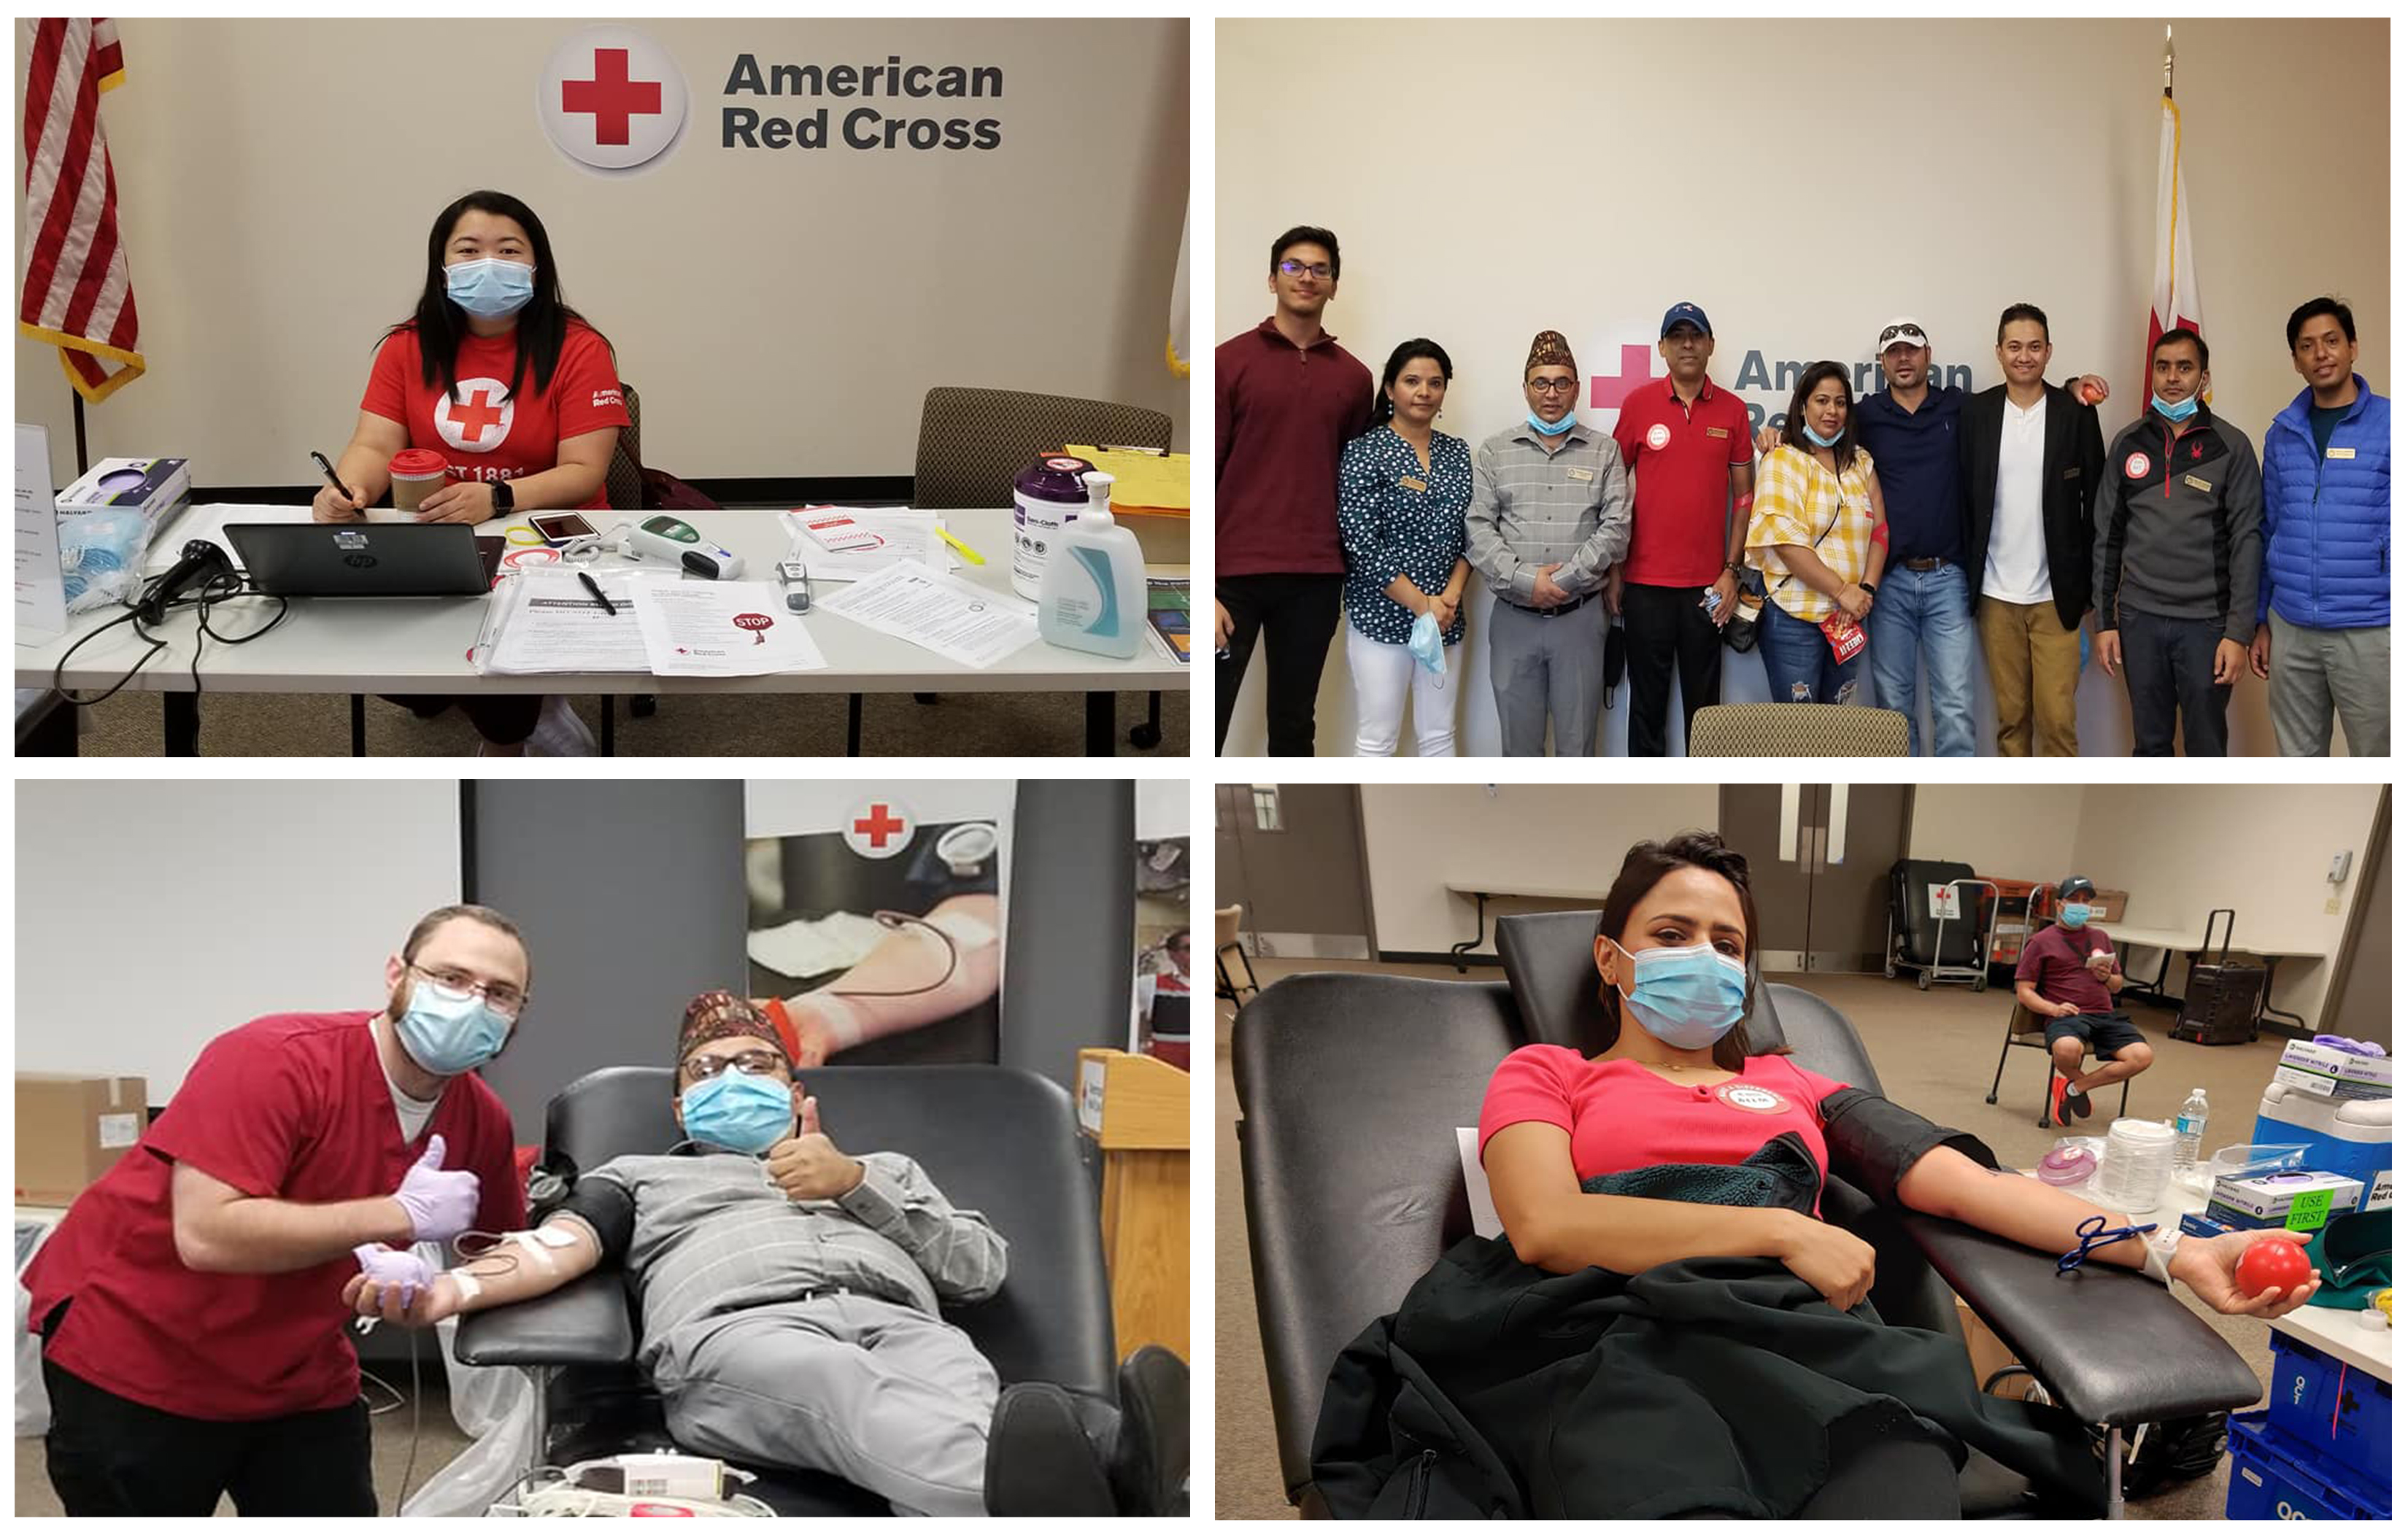 Historic Blood Drive - 2020 Held